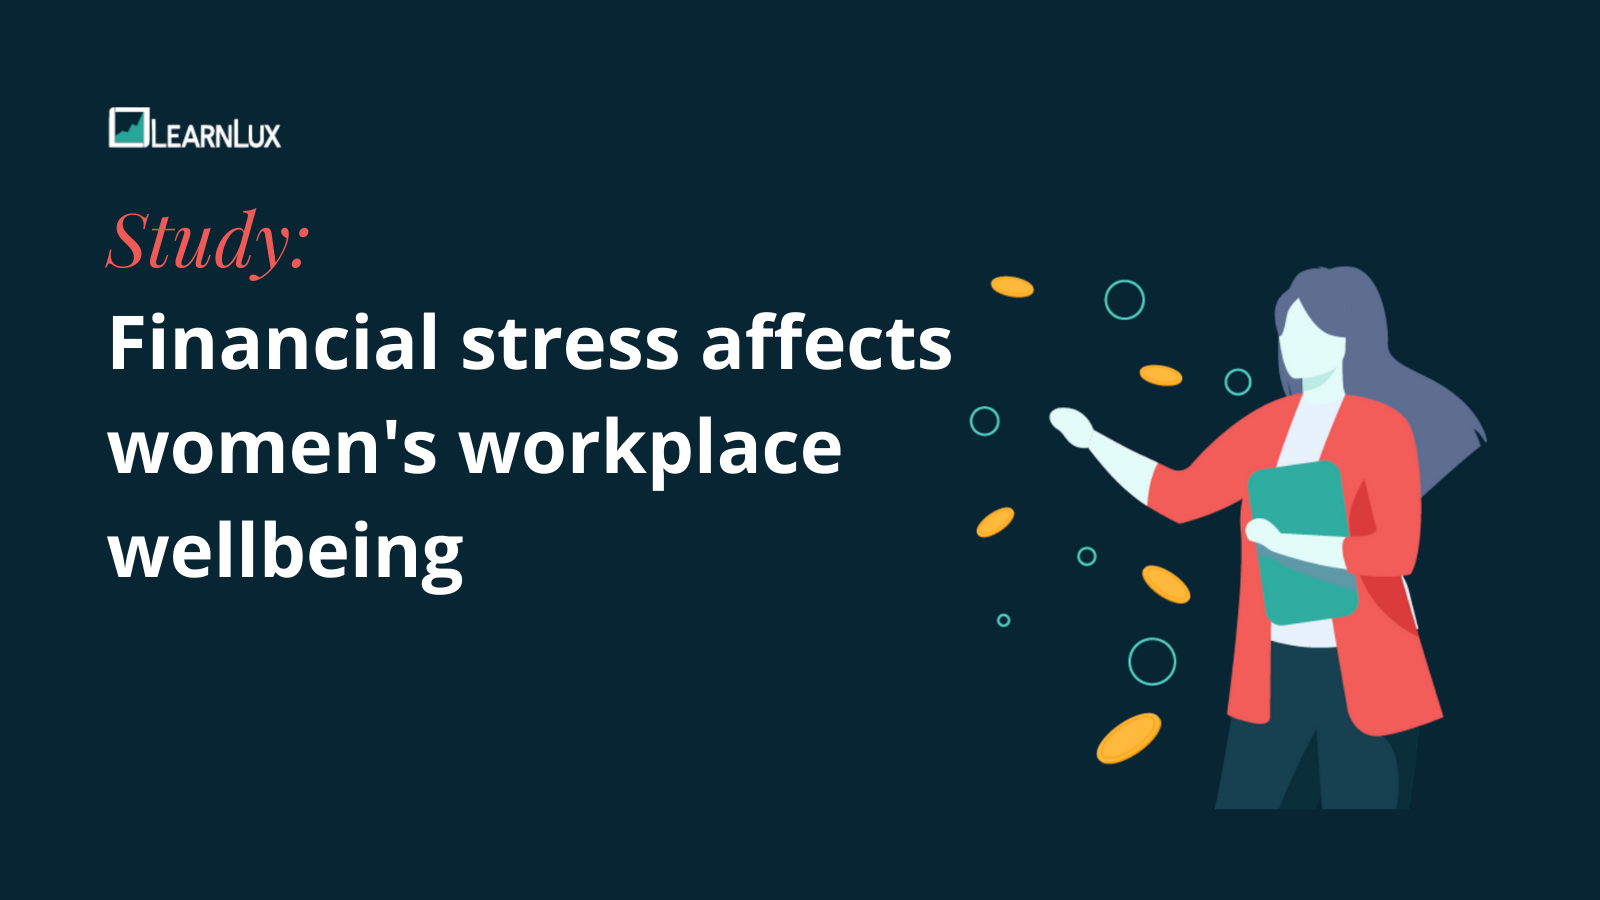 Study: Financial stress affects women's workplace financial wellbeing